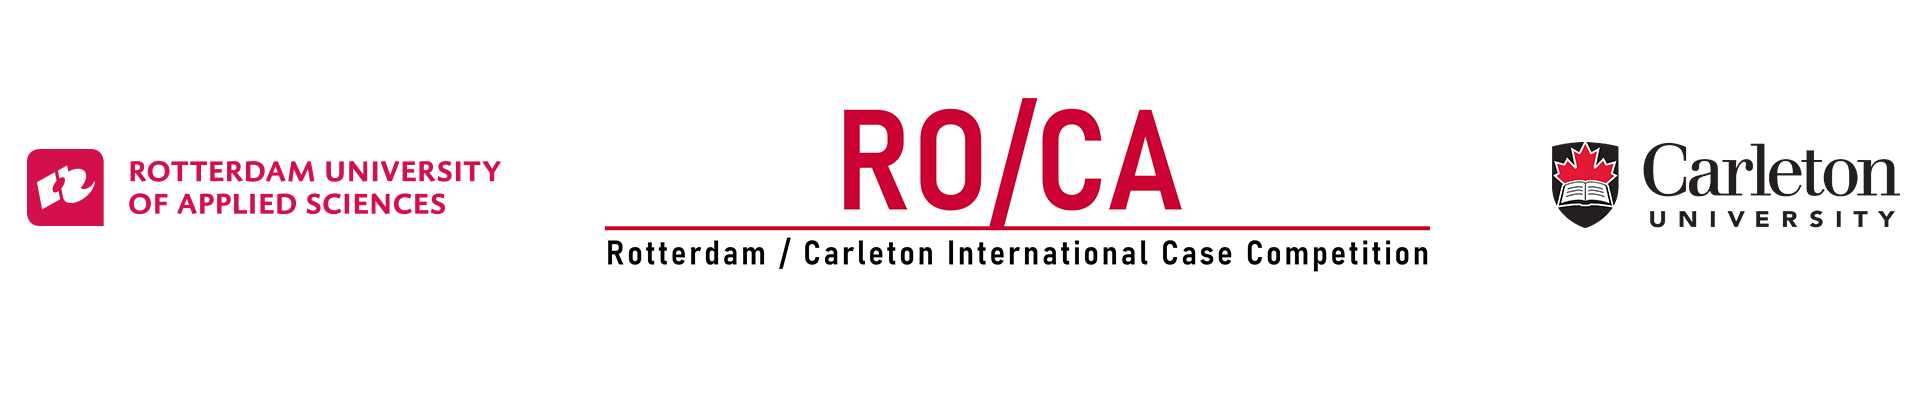 1. ROCA 2020 EVENTS  ROTTERDAM – CARLETON INTERNATIONAL CASE COMPETITION